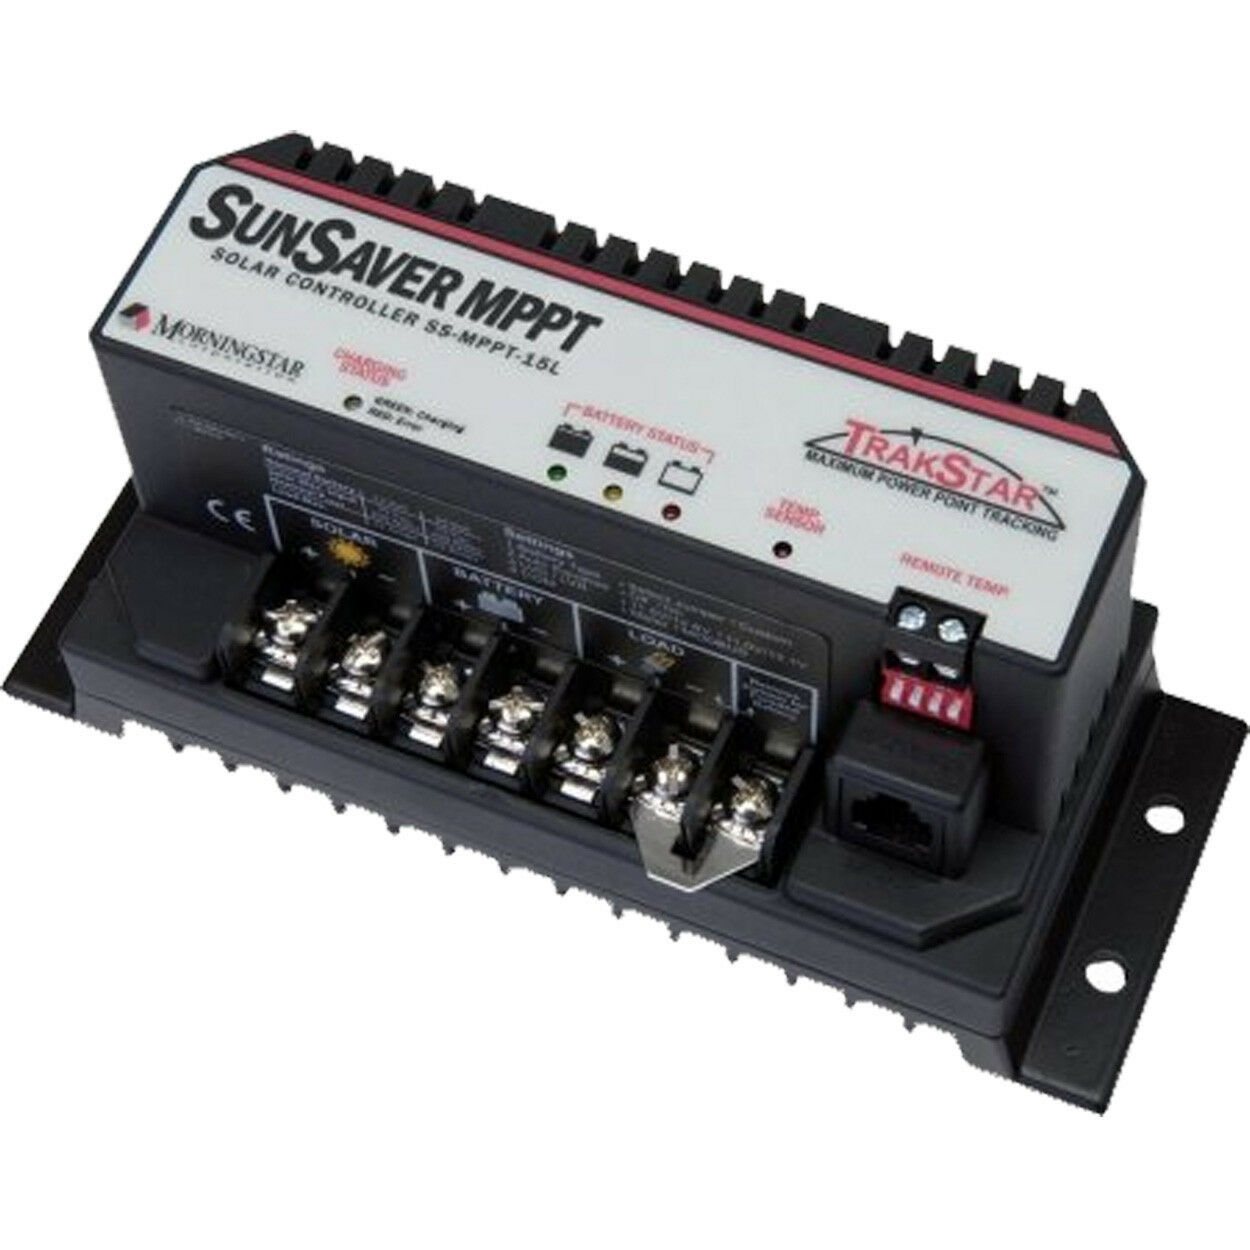 Morningstar Sunsaver Mppt Charge Controller Ss Mppt 15l